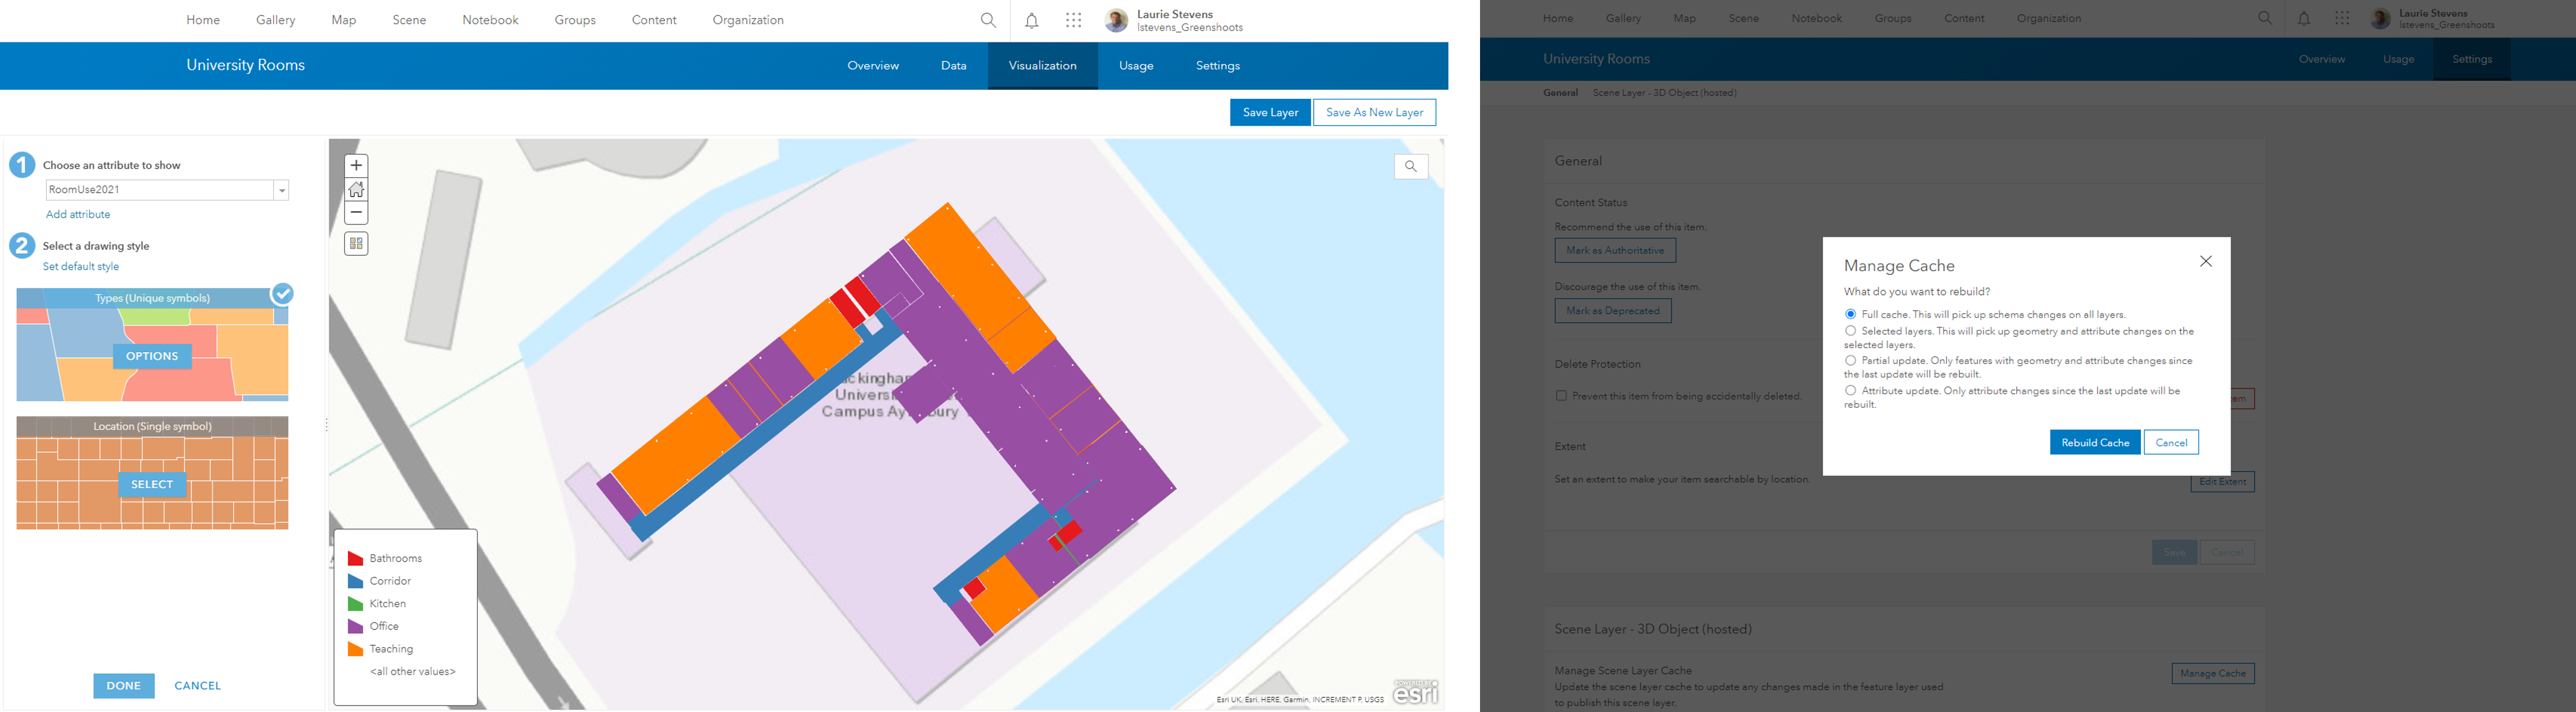 Updating the symbology in ArcGIS Online and managing the cache.